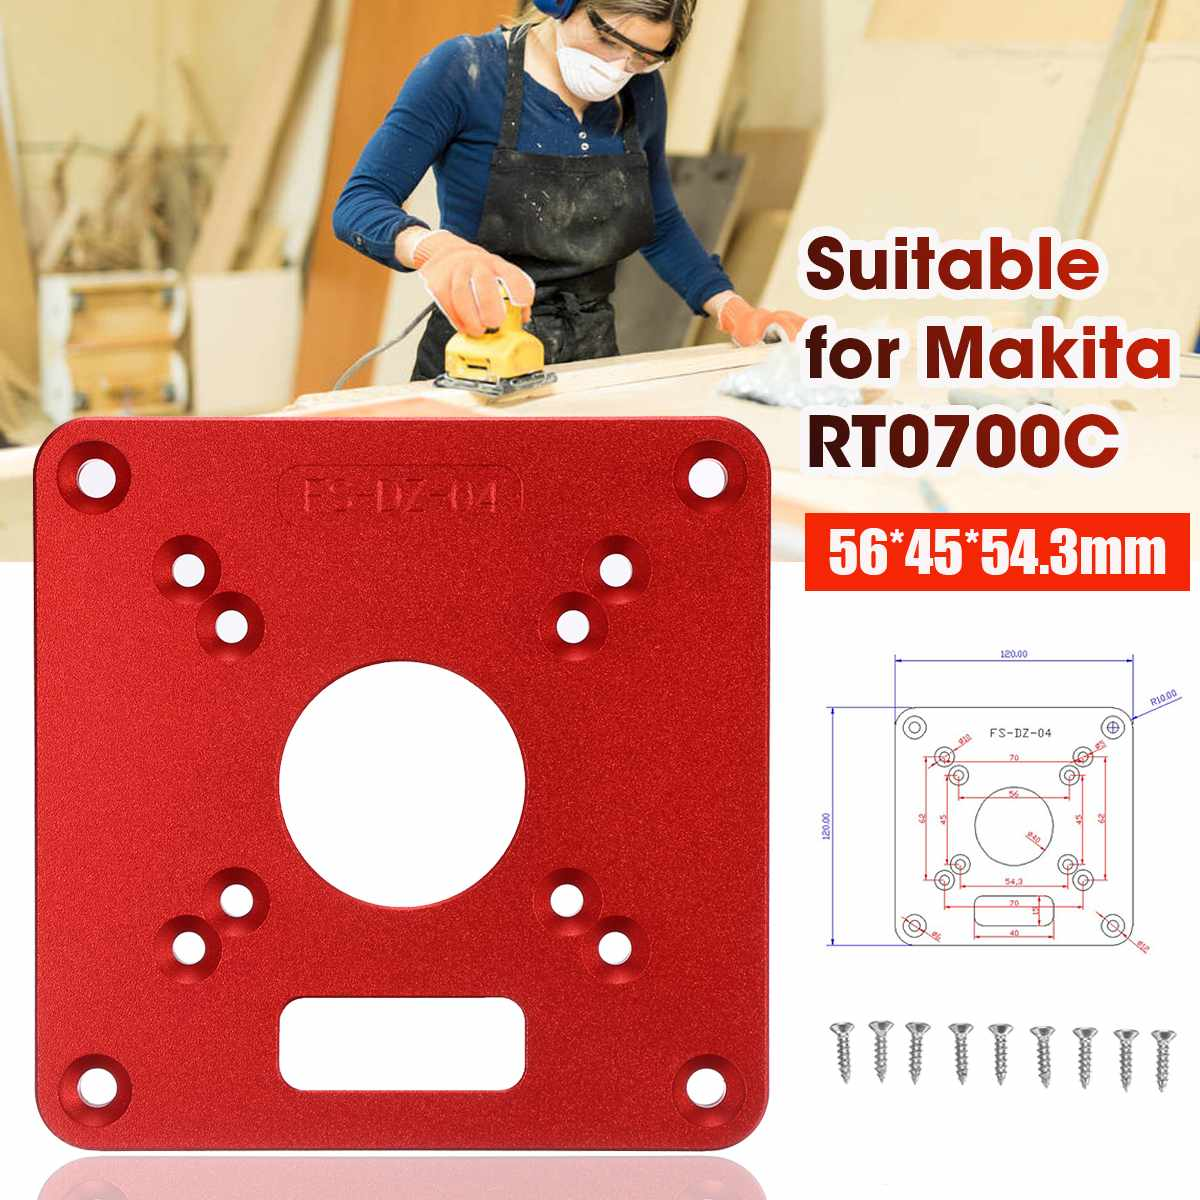 120x120mm Aluminum Alloy Router Plate For MAKITA RT0700C Router Trimmer Woodworking Tool